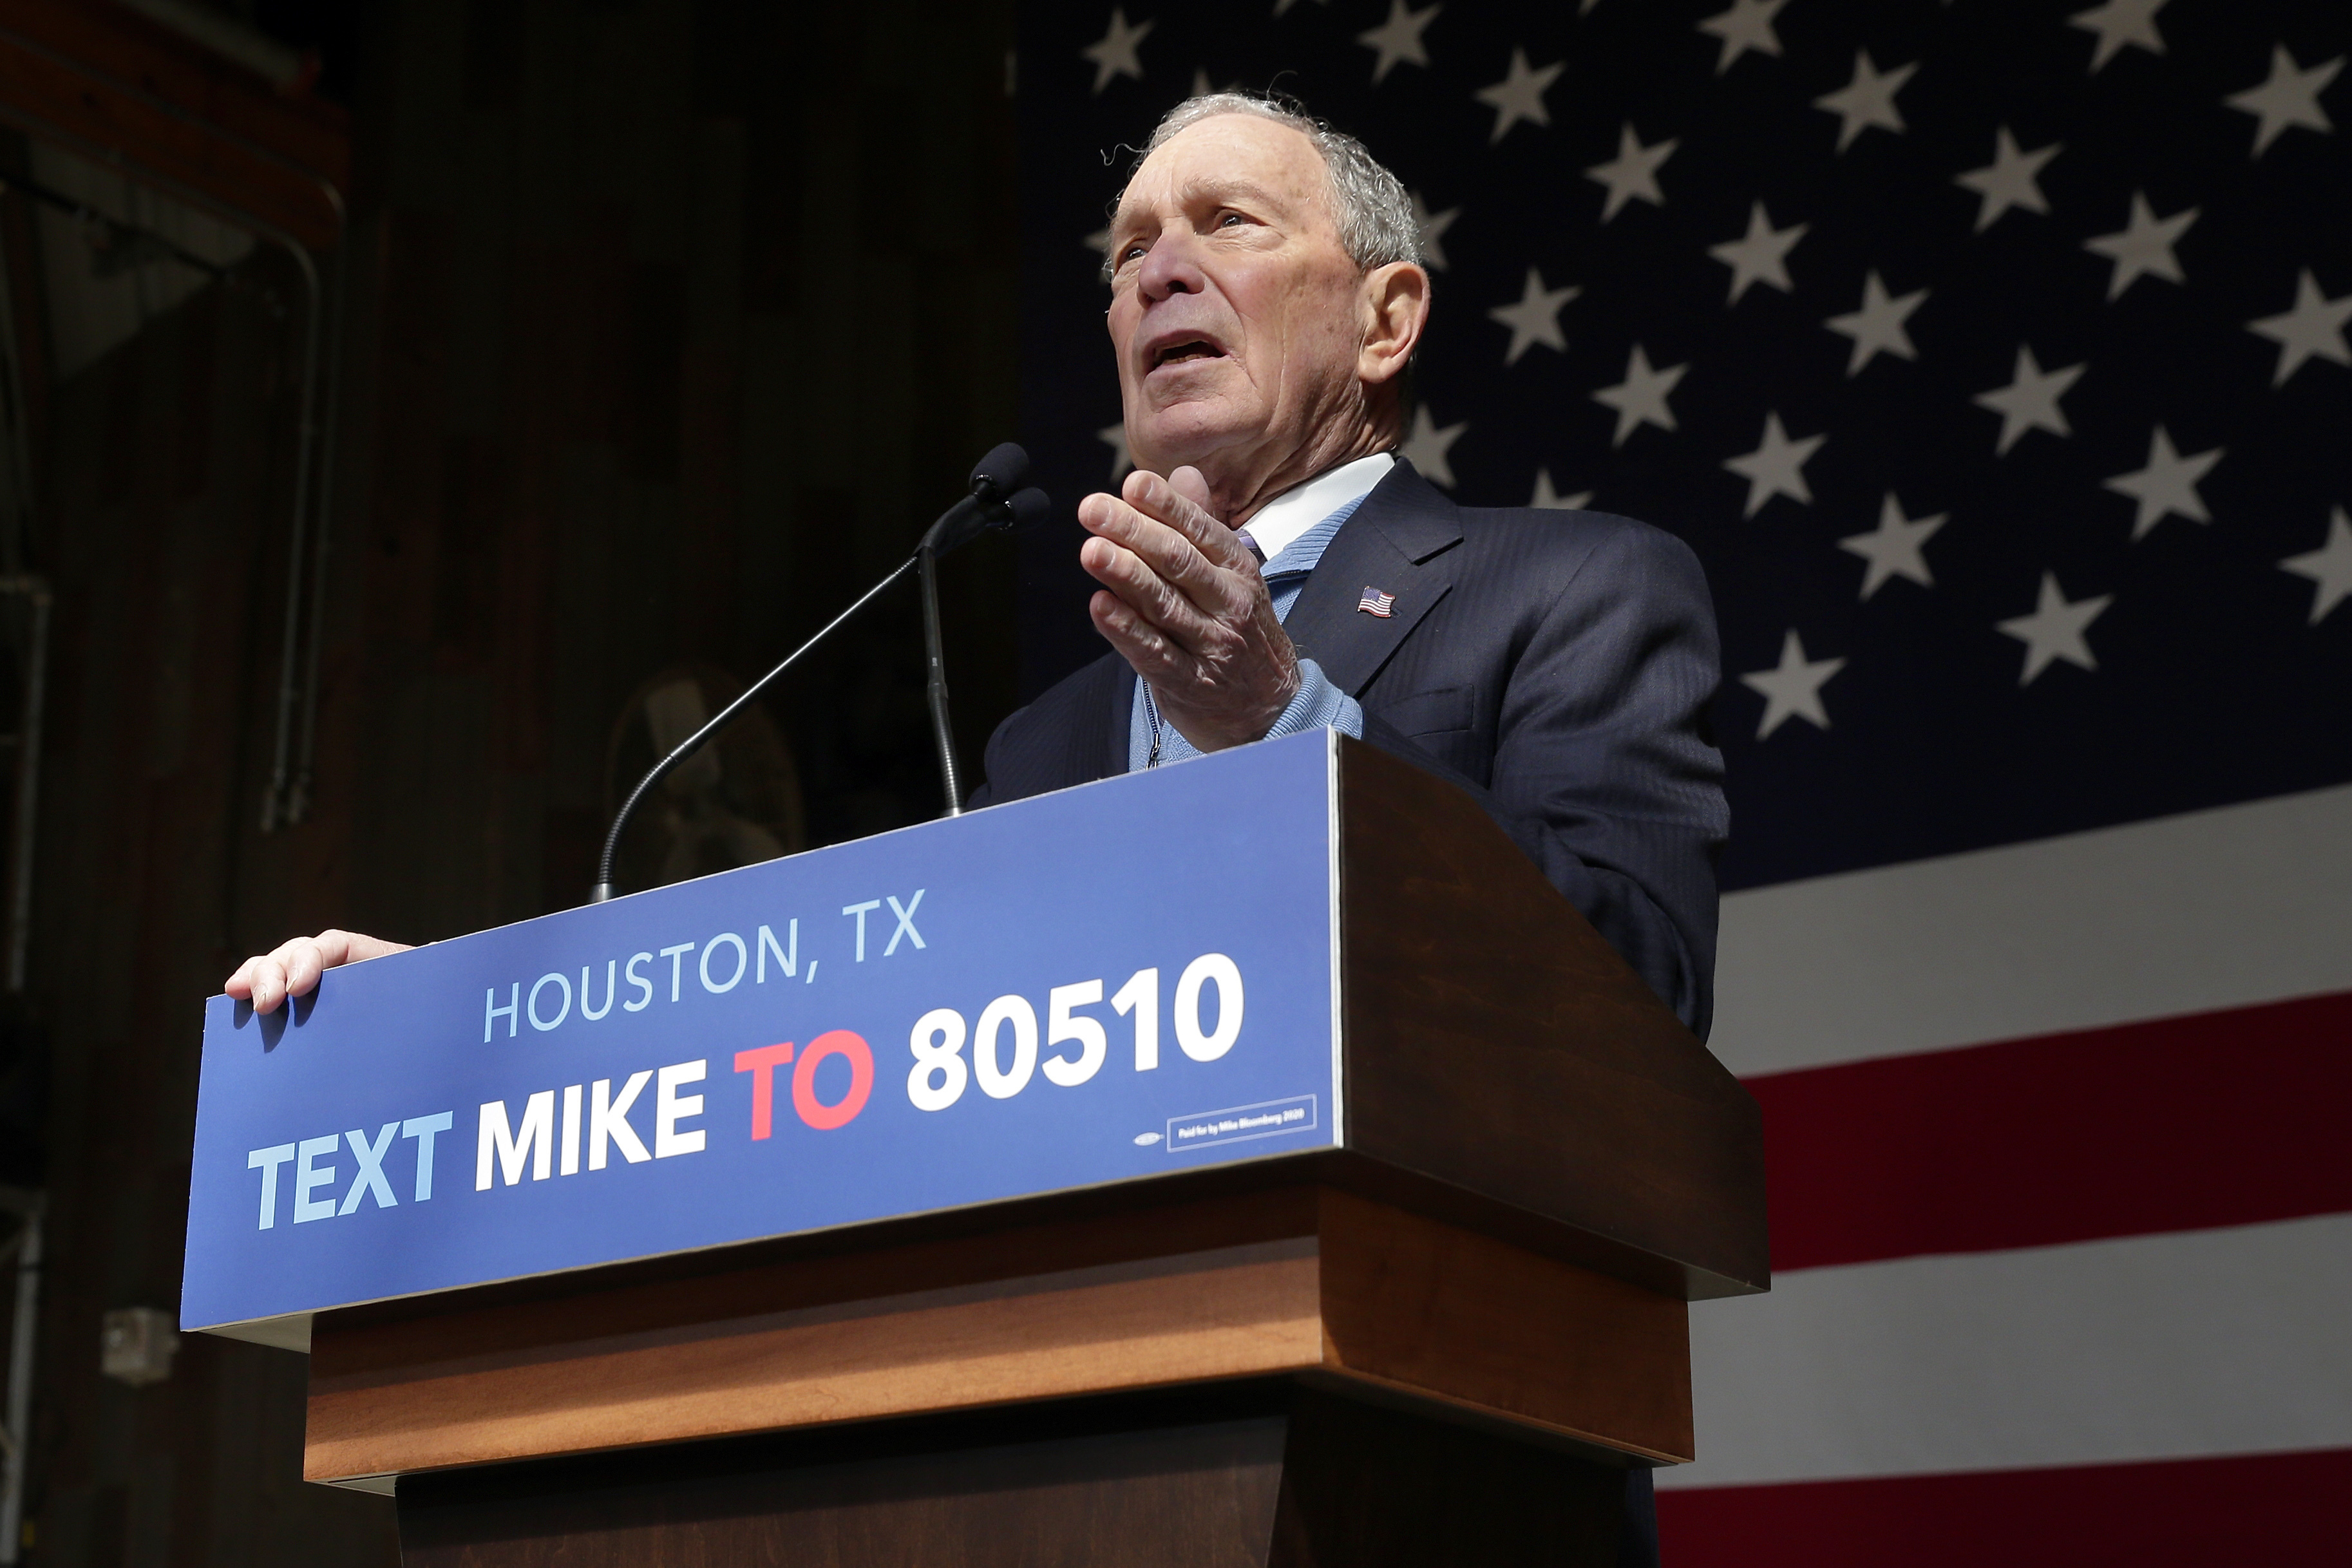 Democratic presidential candidate and former New York City Mayor Mike Bloomberg speaks during a campaign event in Houston on Feb. 27, 2020.